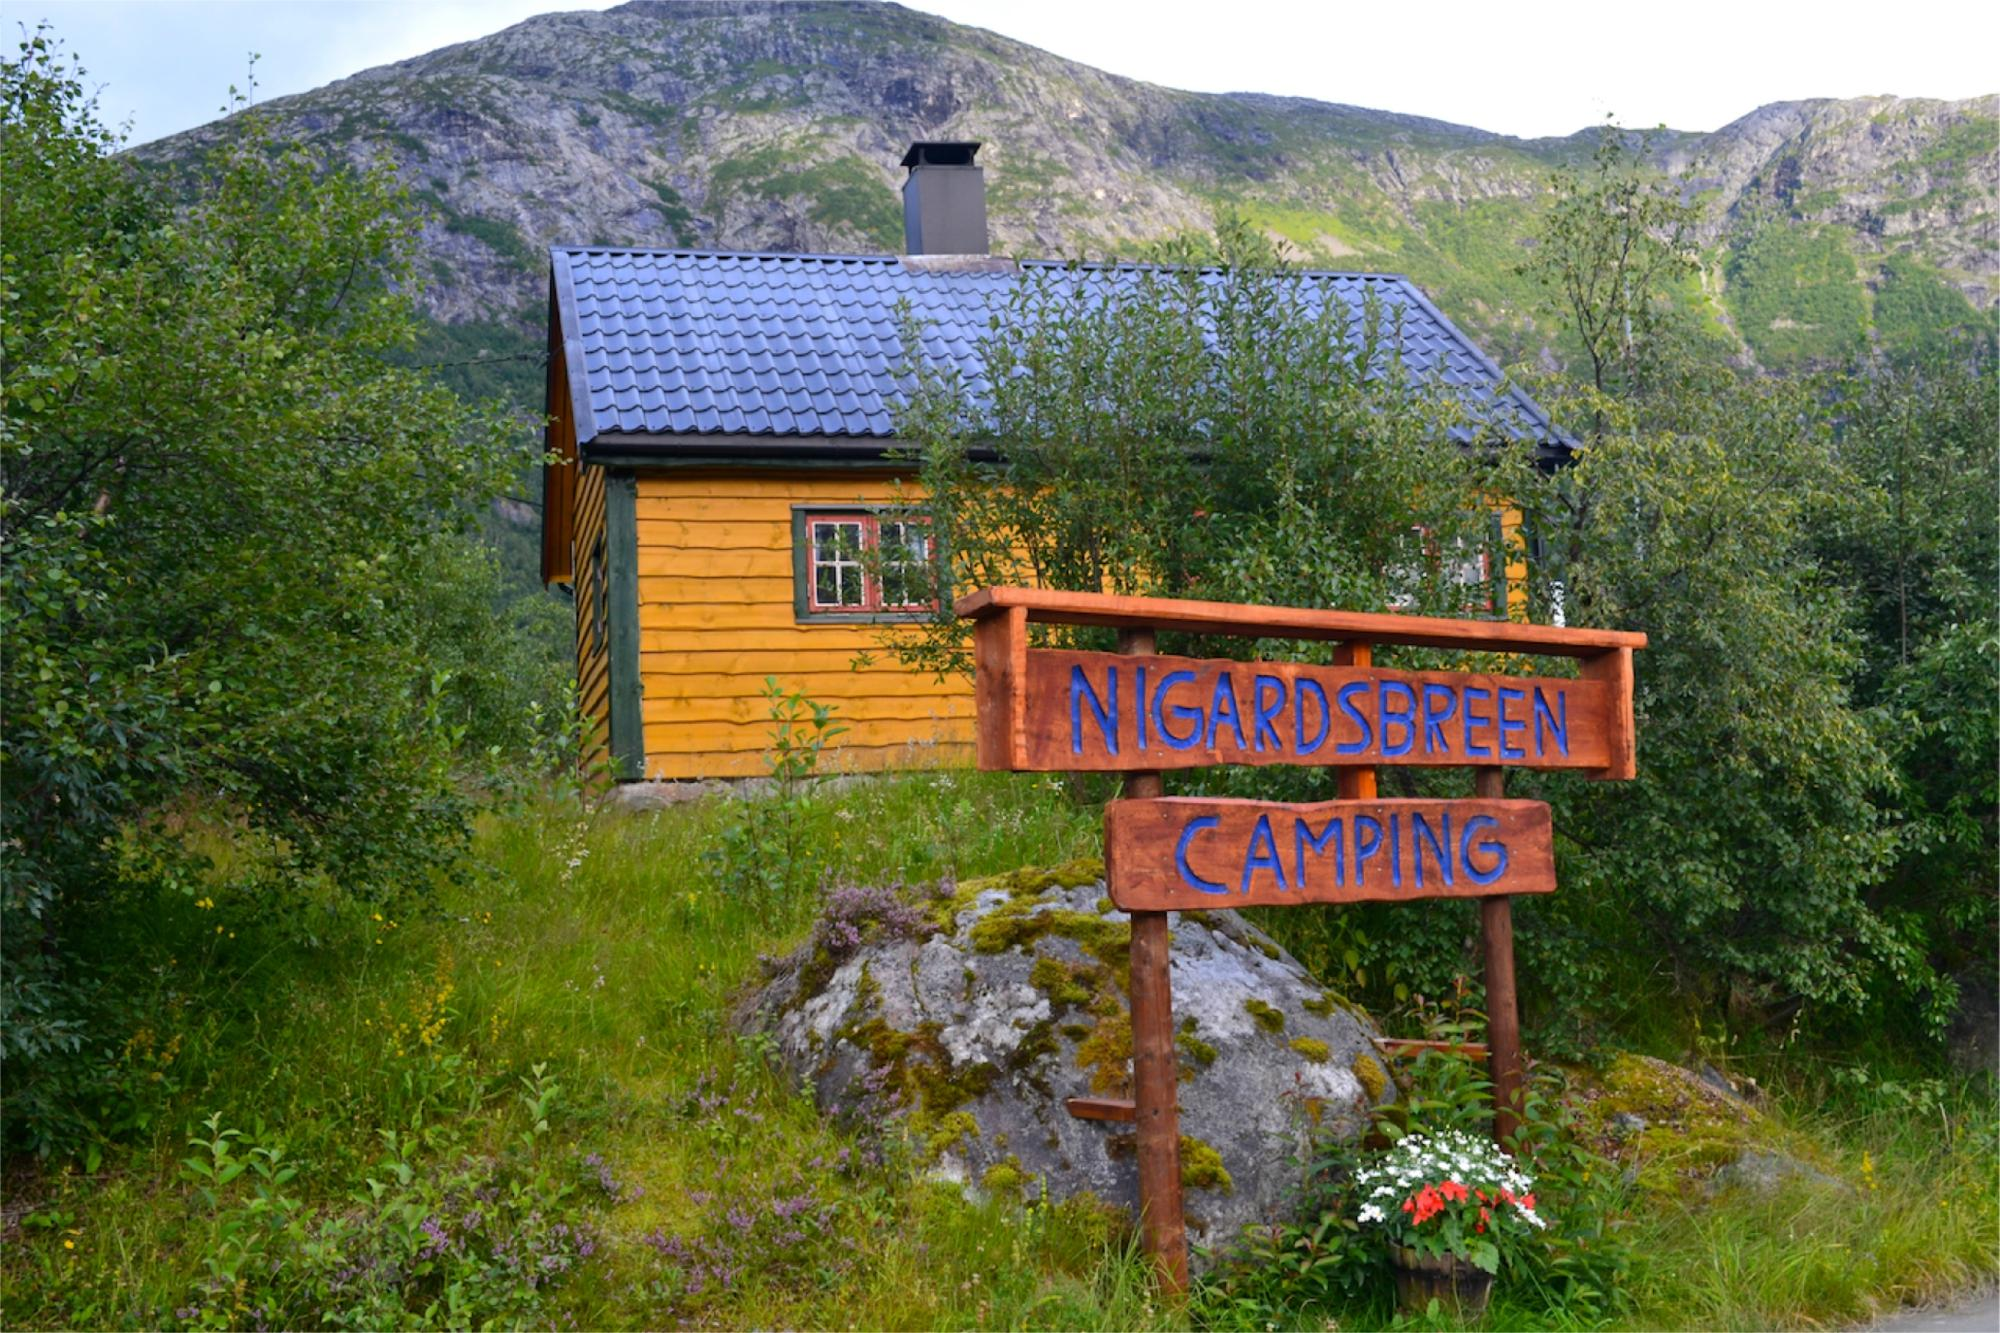 Nigardsbreen Camping